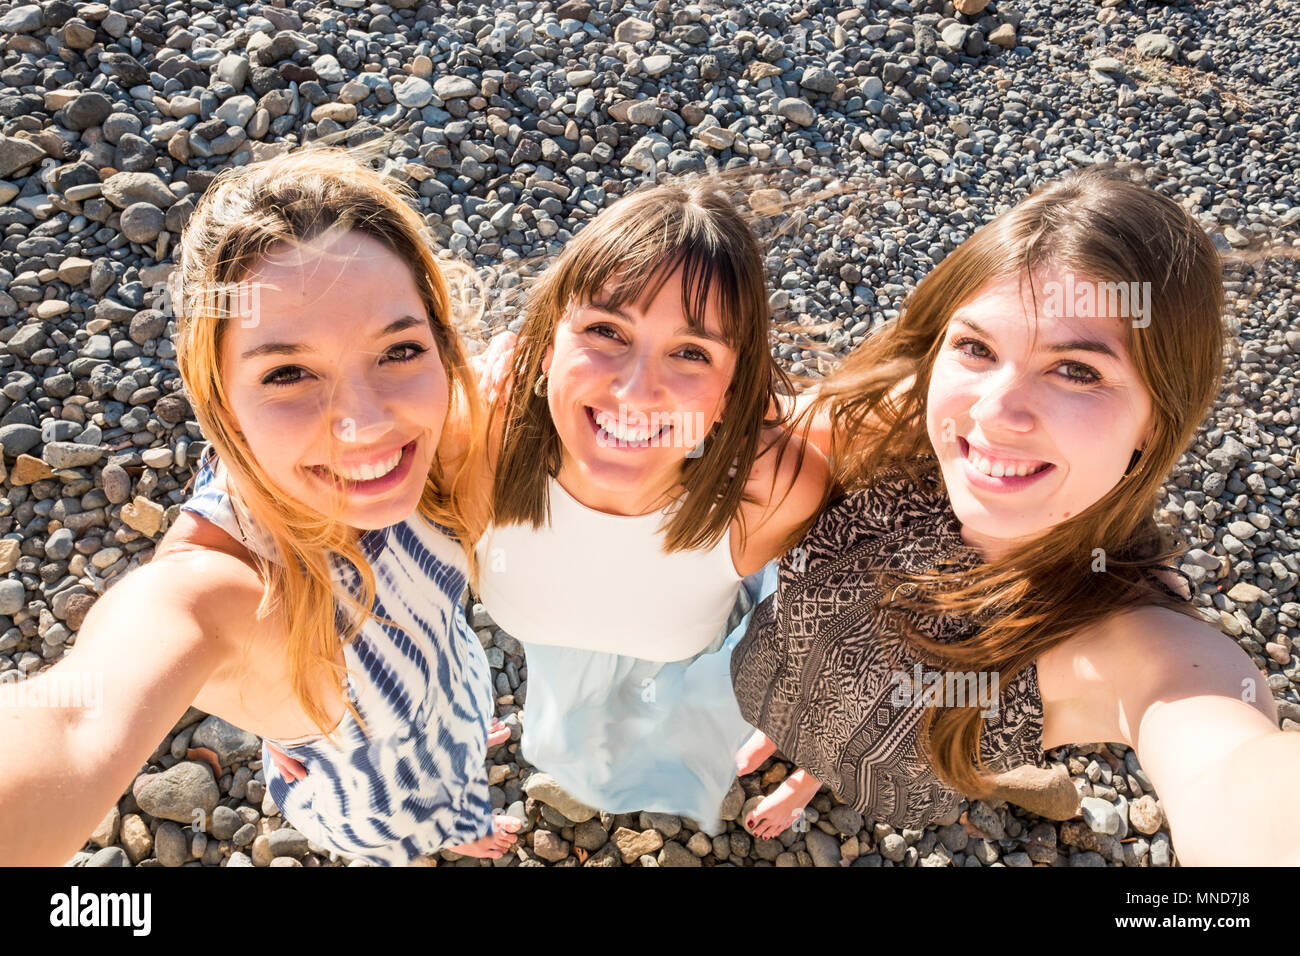 Aerial selfies for a group of three beautiful woman with a stone background. Happiness moment to catch some memories and post them on the social netwo - Stock Image